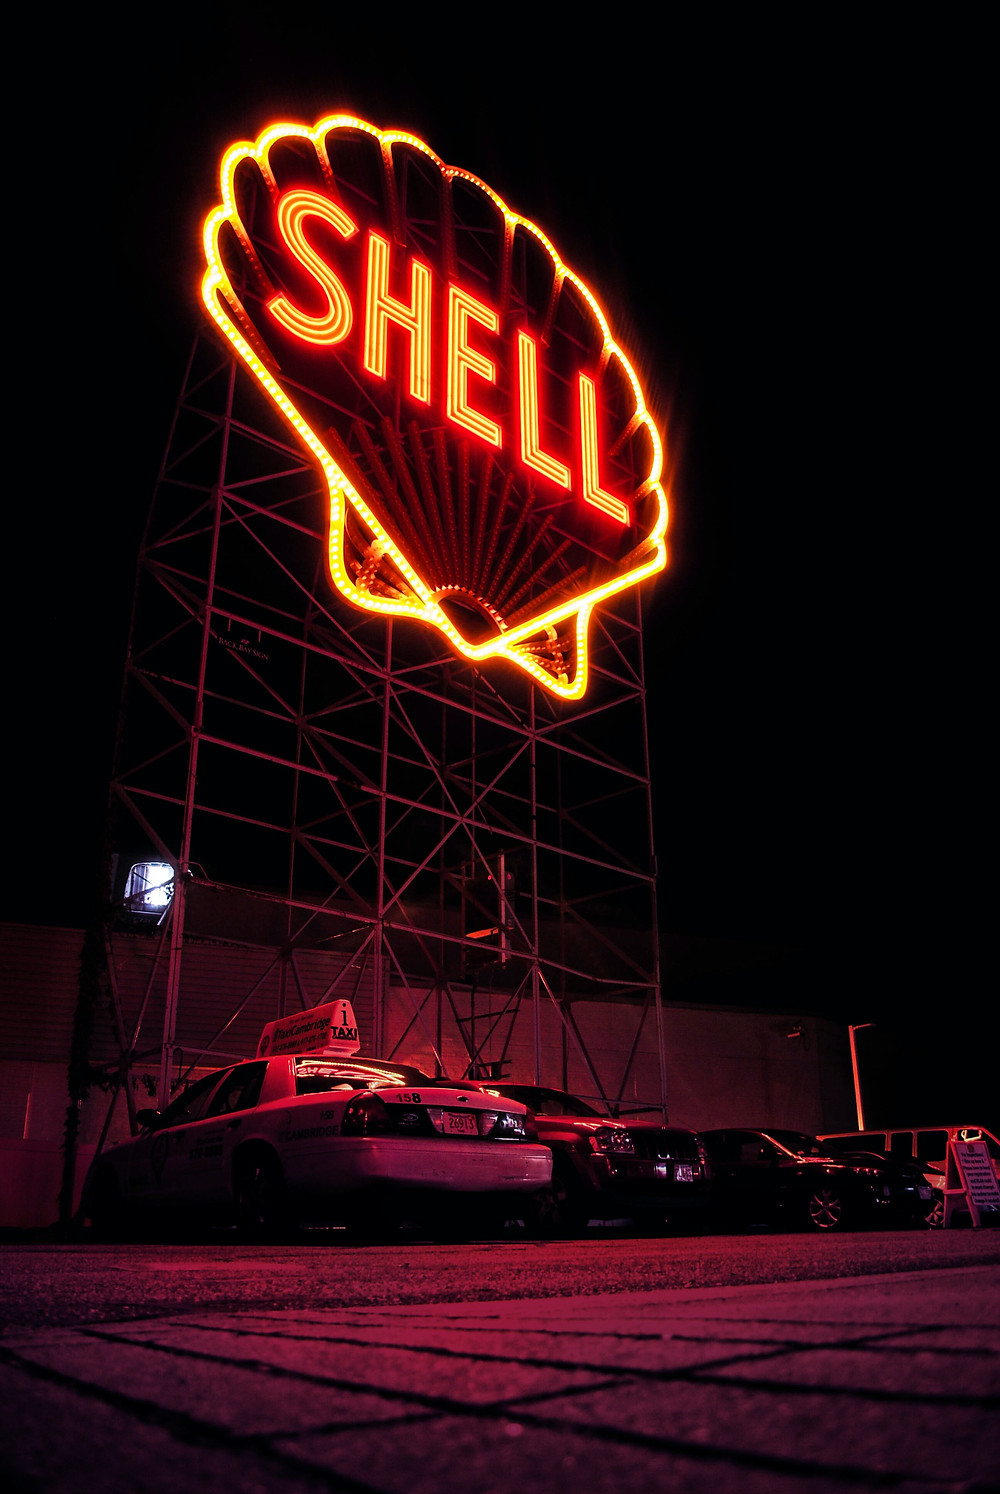 The Shell Oil logo displayed